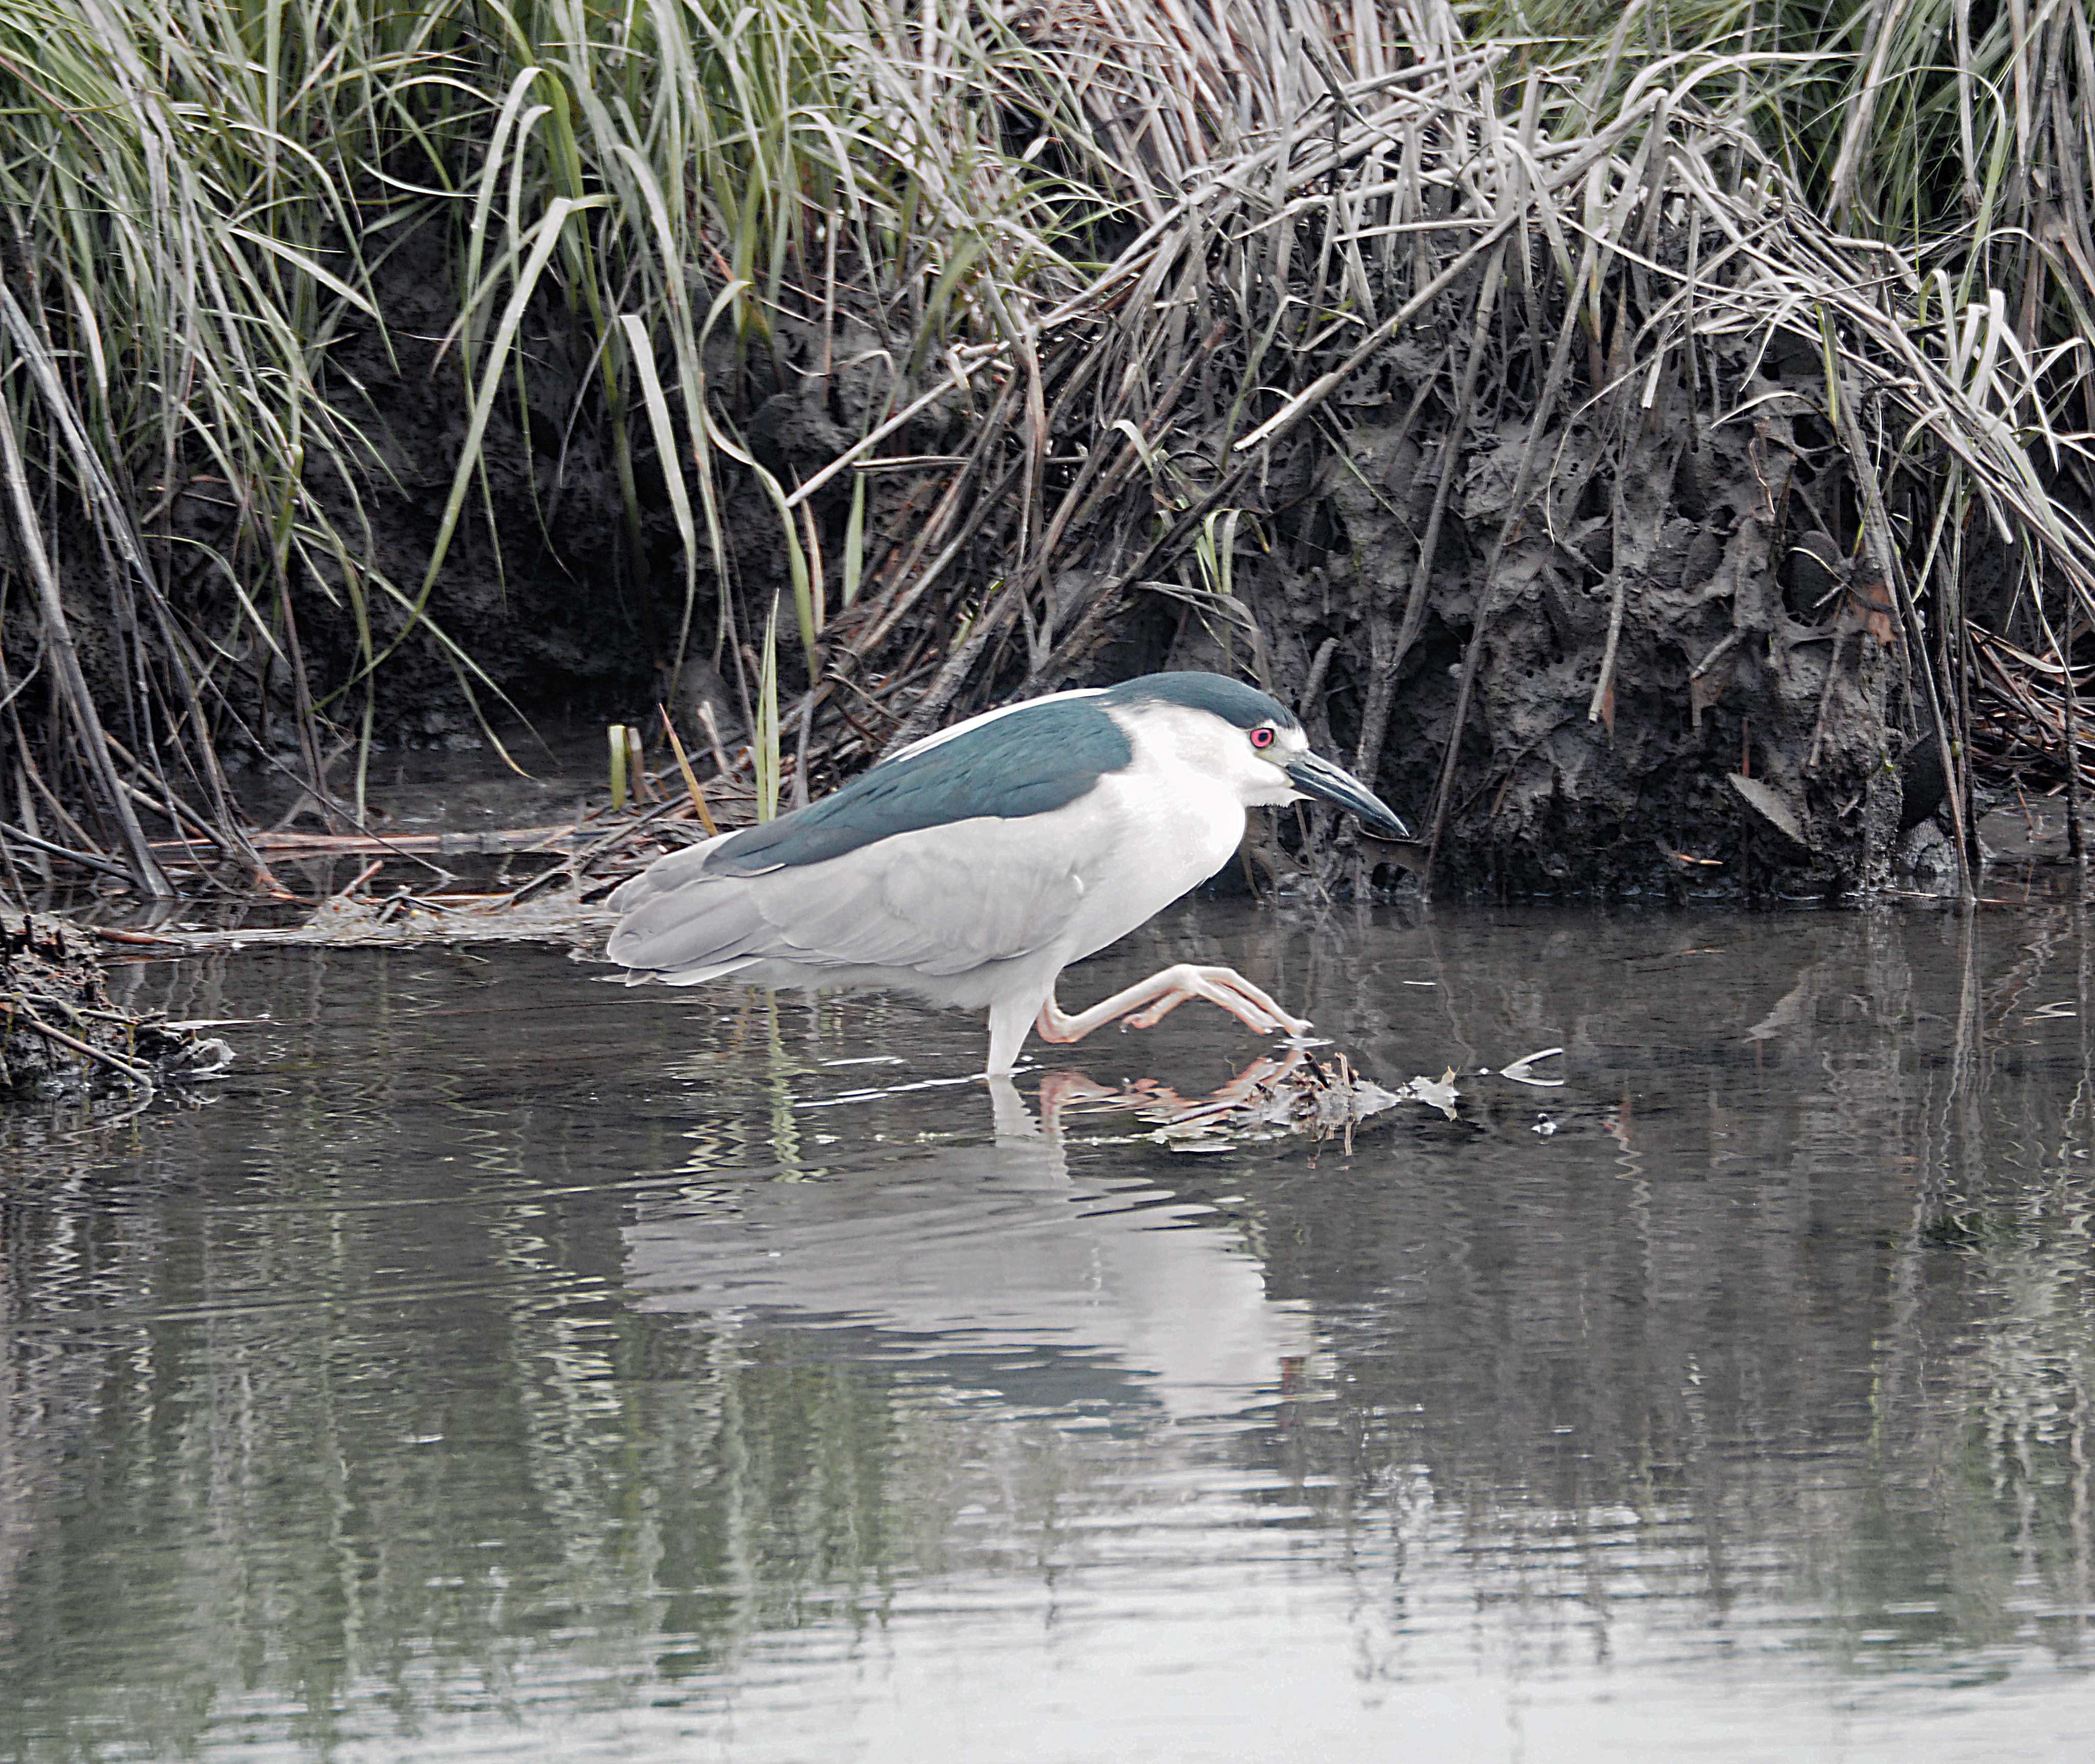 Black-backed night heron